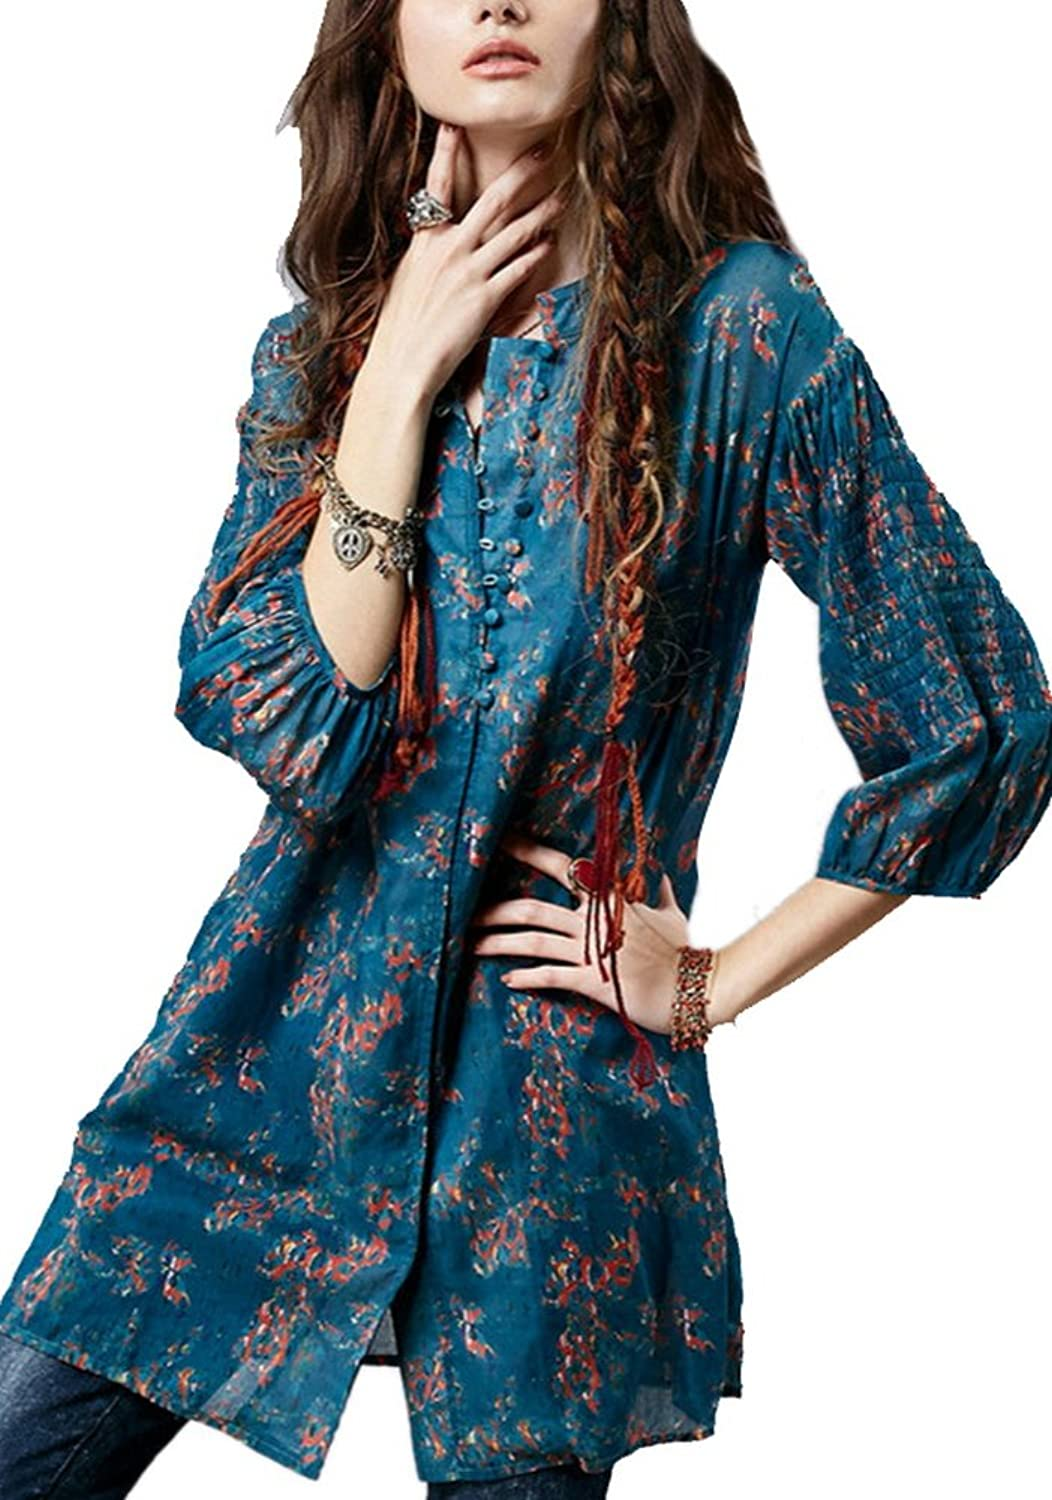 Allbebe Women's Vintage 3/4 Sleeve Linen Cotton Floral Embroidery Blouse